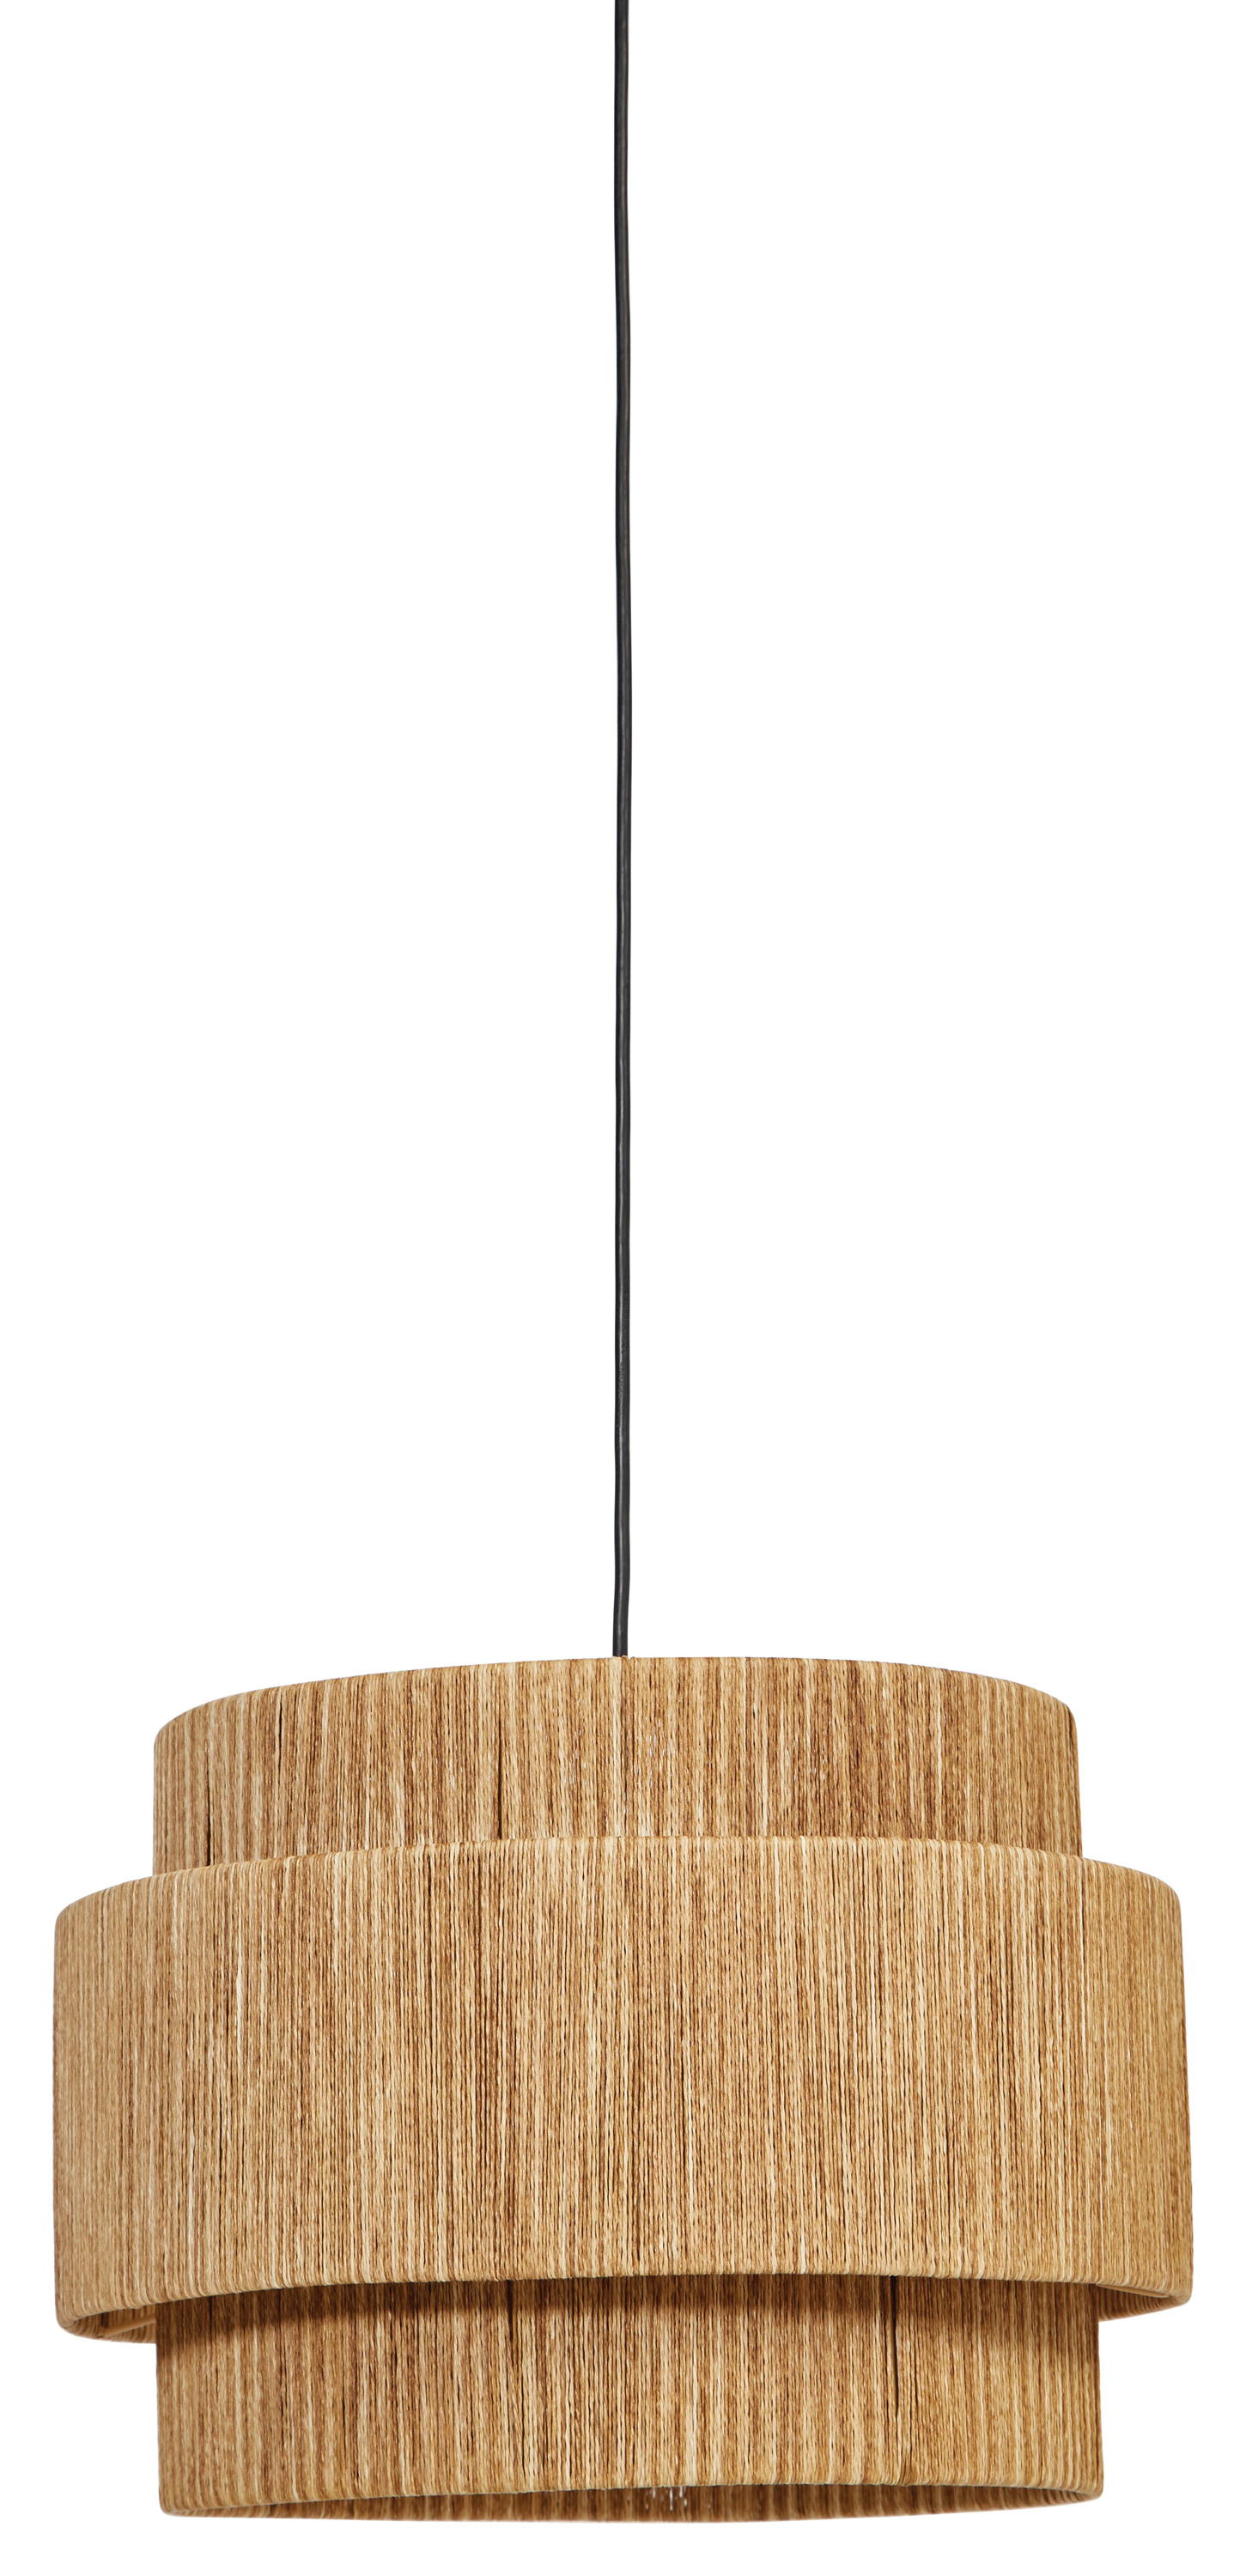 Creative Co Op 3 Tier Woven Paper String Pendant Light With 4 Cord Hardwire Only Walmart Com Walmart Com